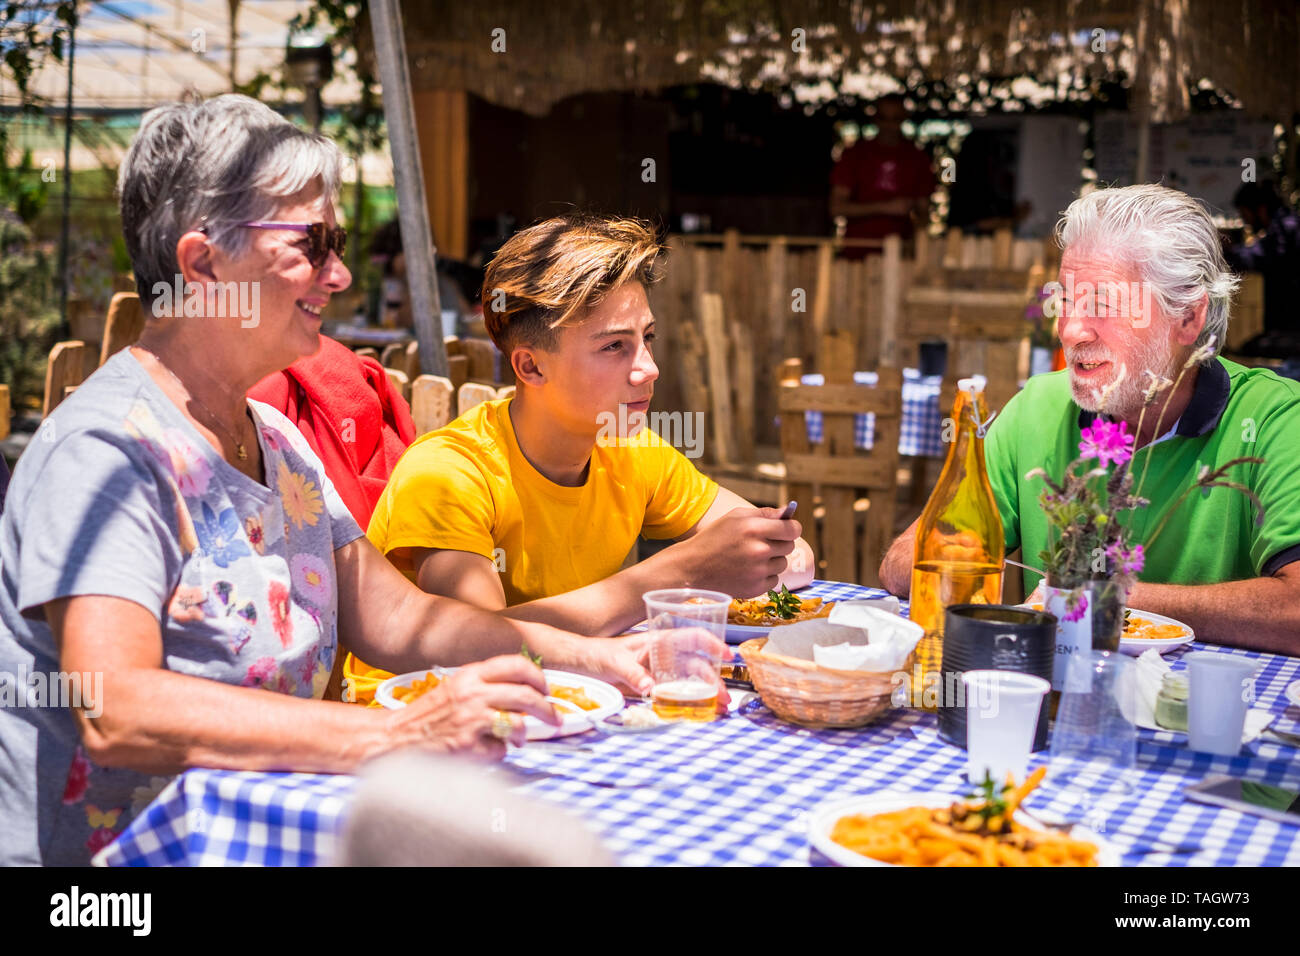 Active senior aged old people with grandson having lunh together outdoor in alternative restaurant - family concept with teenager and grandfathers tog Stock Photo